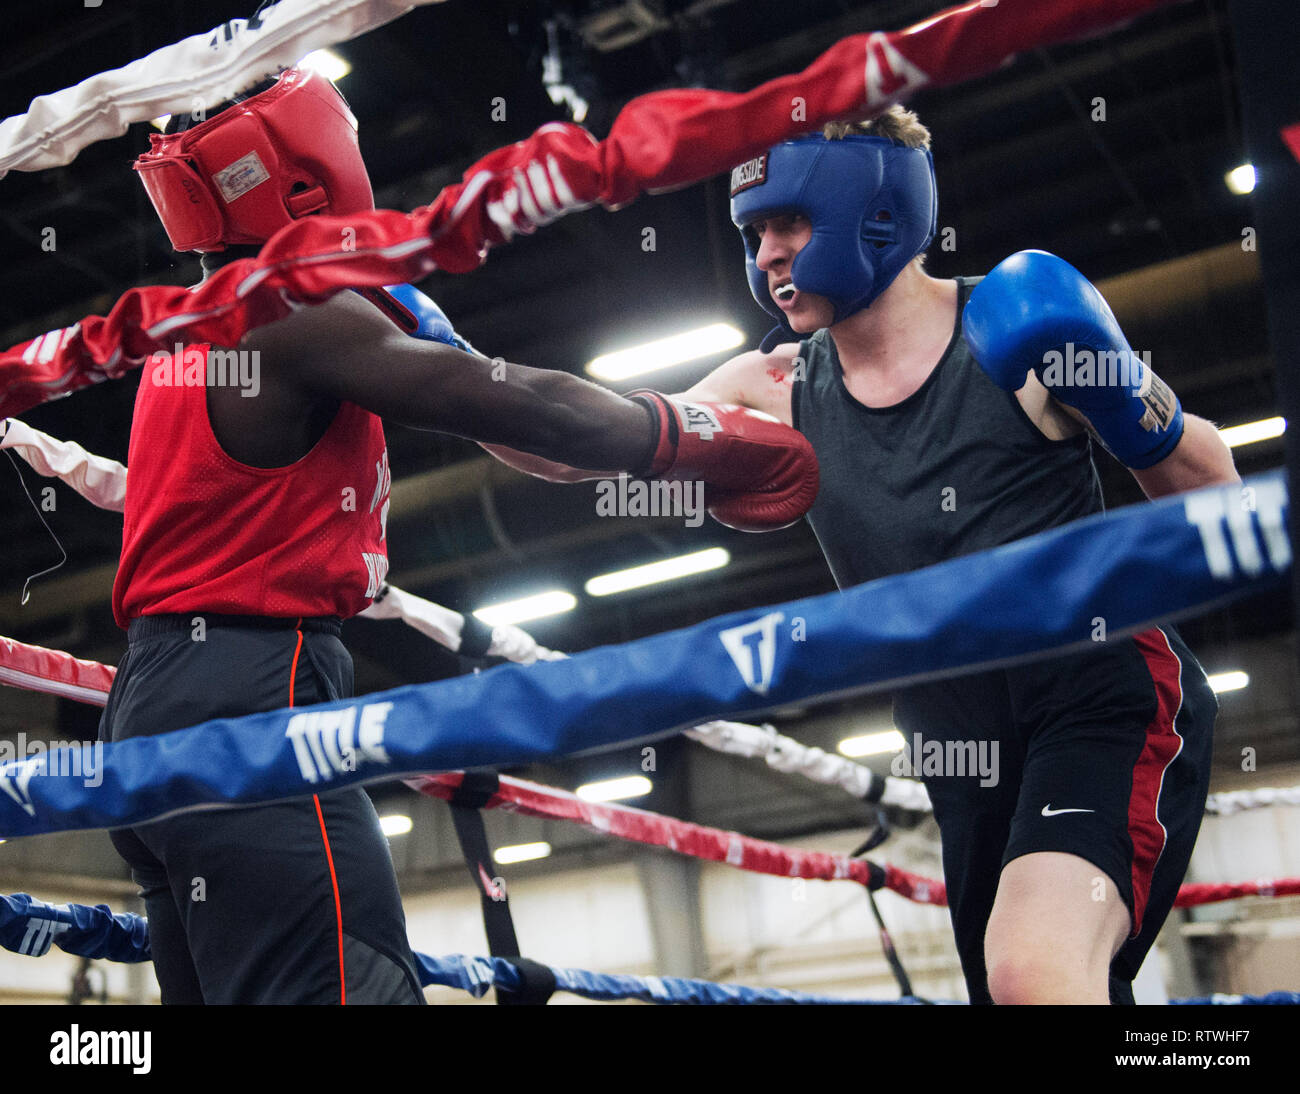 March 2, 2019: Matt Cikowski of Illinois (right) hits Jovaughn Bowen of Wisconsin (left) with a right hand in the Amateur Boxing competition  at the Arnold Sports Festival in Columbus, Ohio, USA. Brent Clark/Alamy Live News Stock Photo